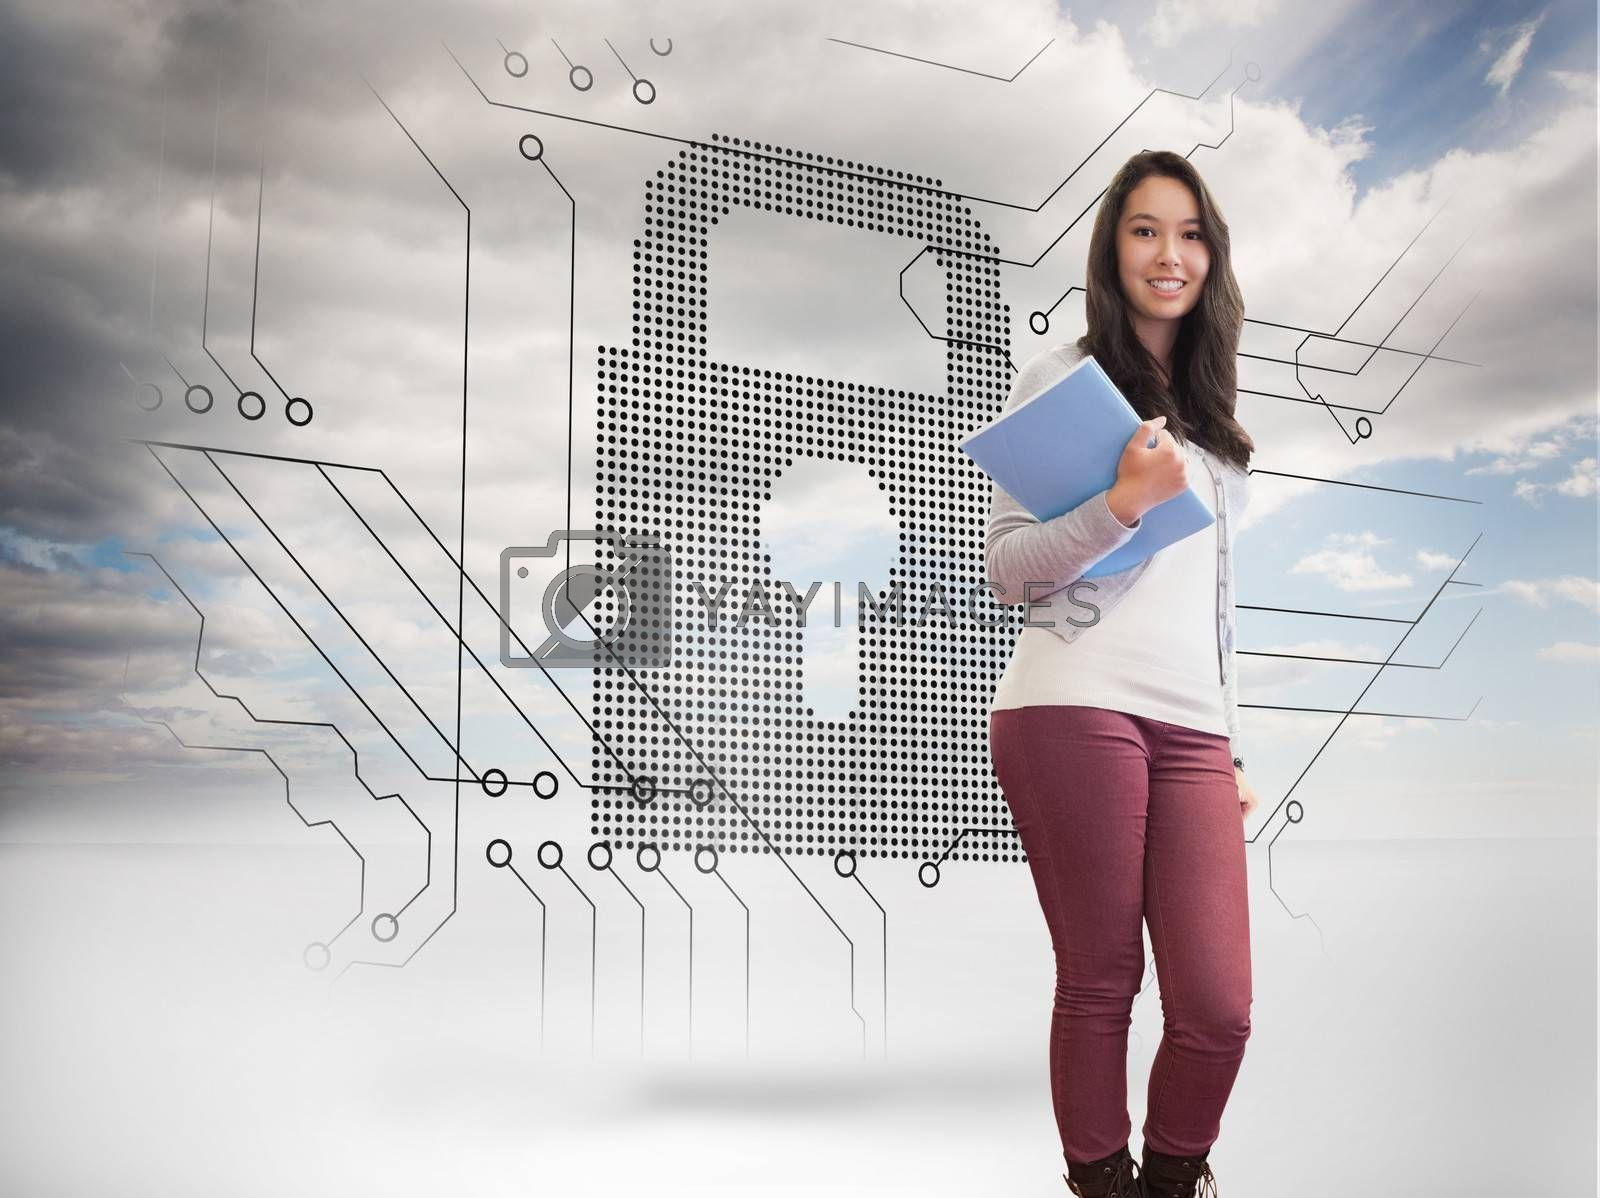 Composite image of student standing in a computer room and holding a folder while smiling